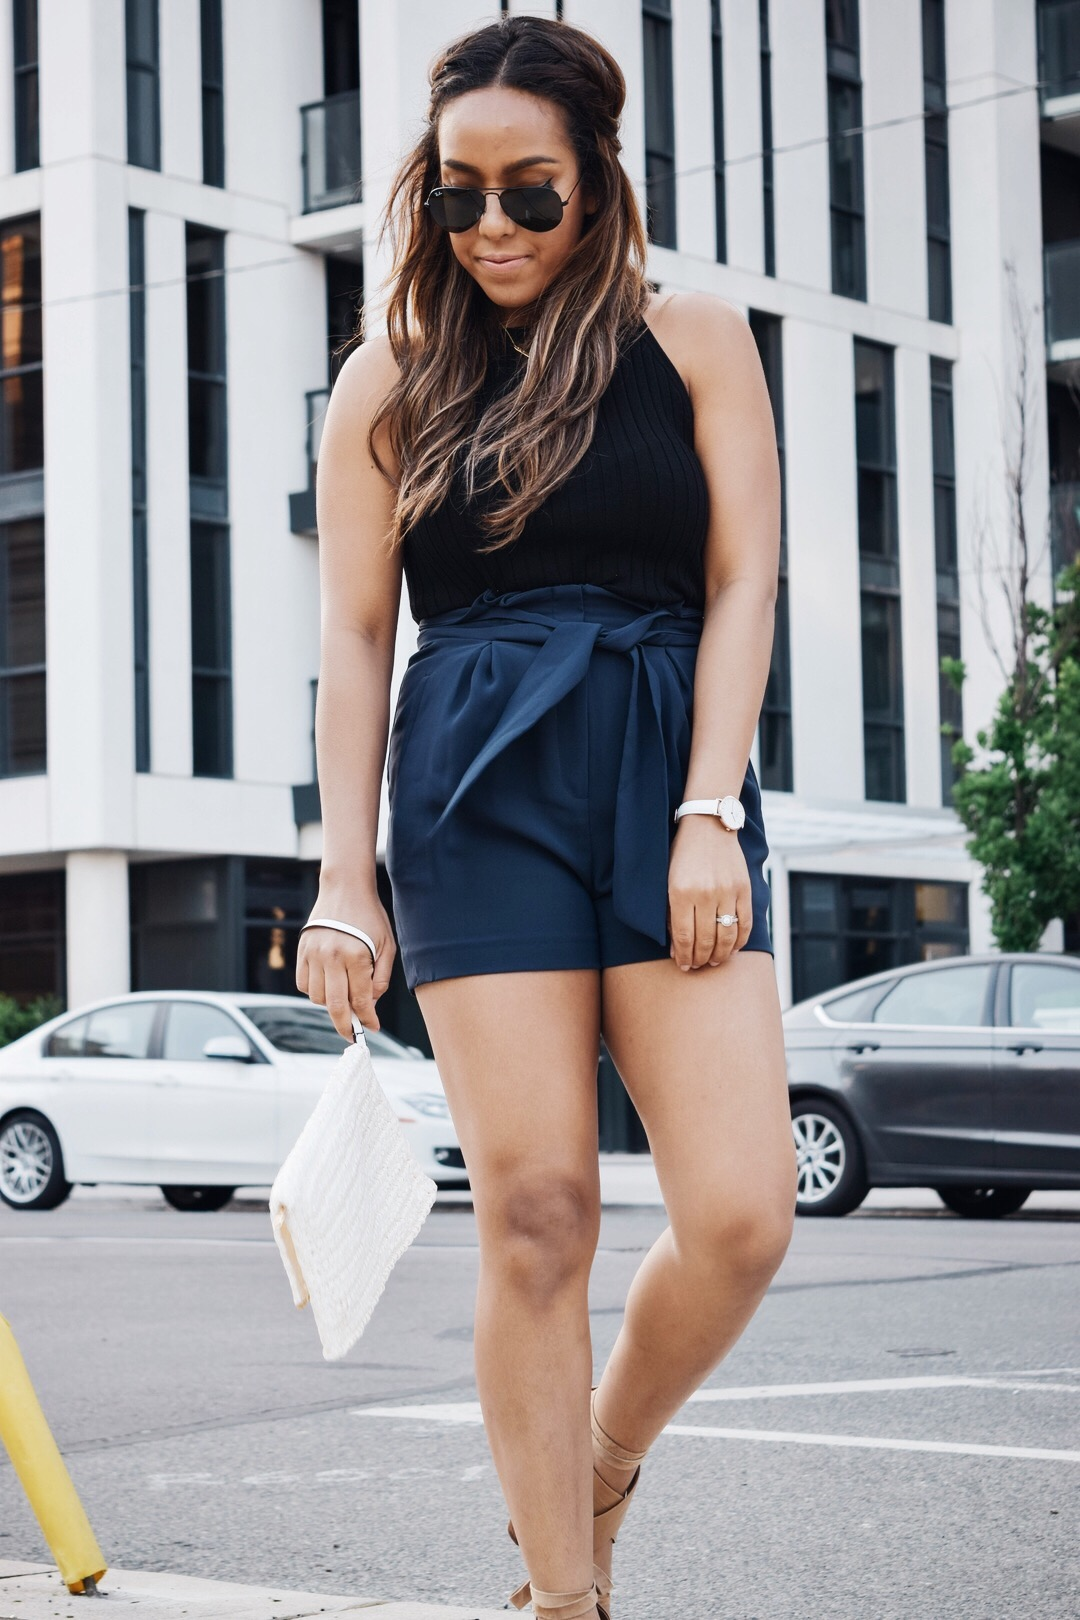 Fashion Blogger Lauren Sheriff From Basic Babe Wearing Summer Shorts From H&M